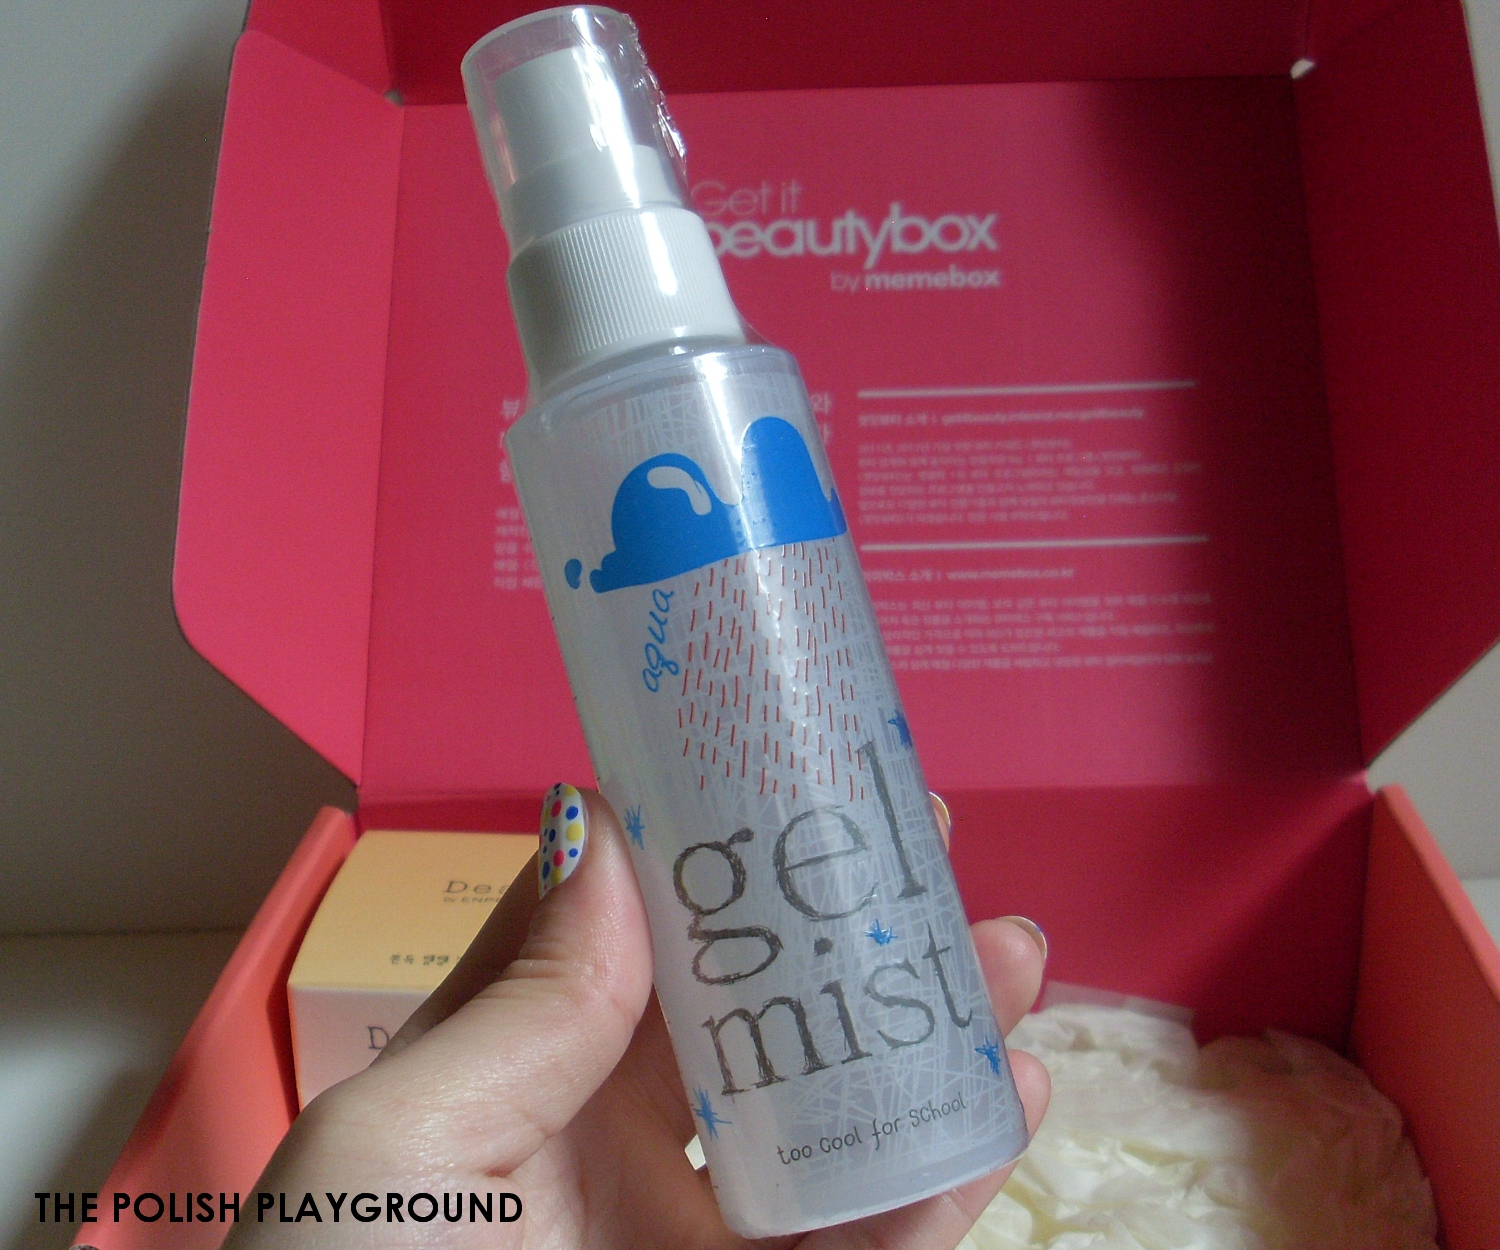 Memebox Luckybox #1 Unboxing and First Impressions - Too Cool For School Aqua Gel Mist